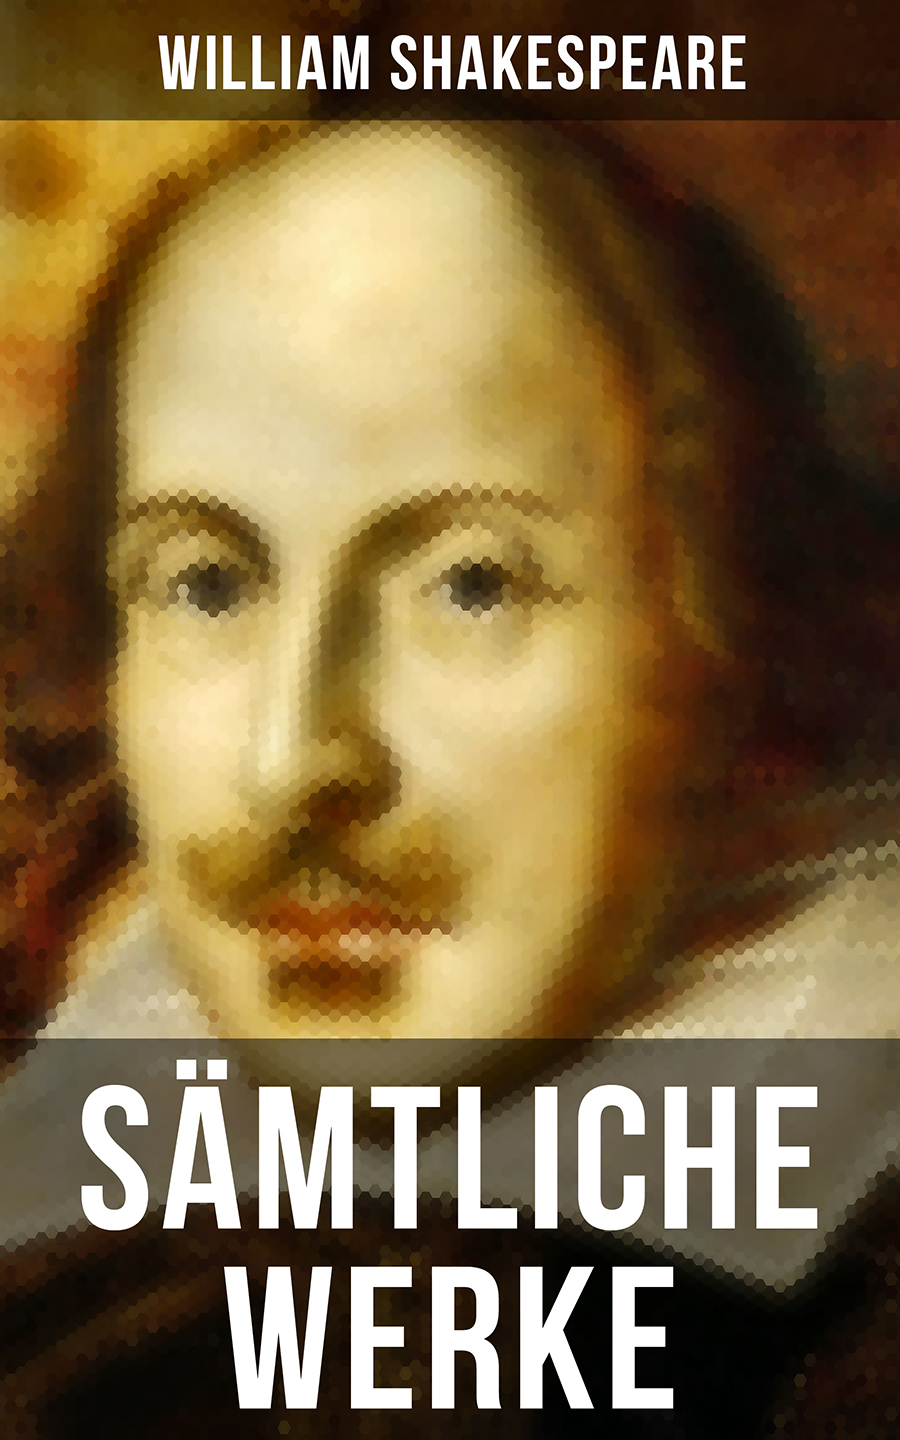 samtliche werke von william shakespeare